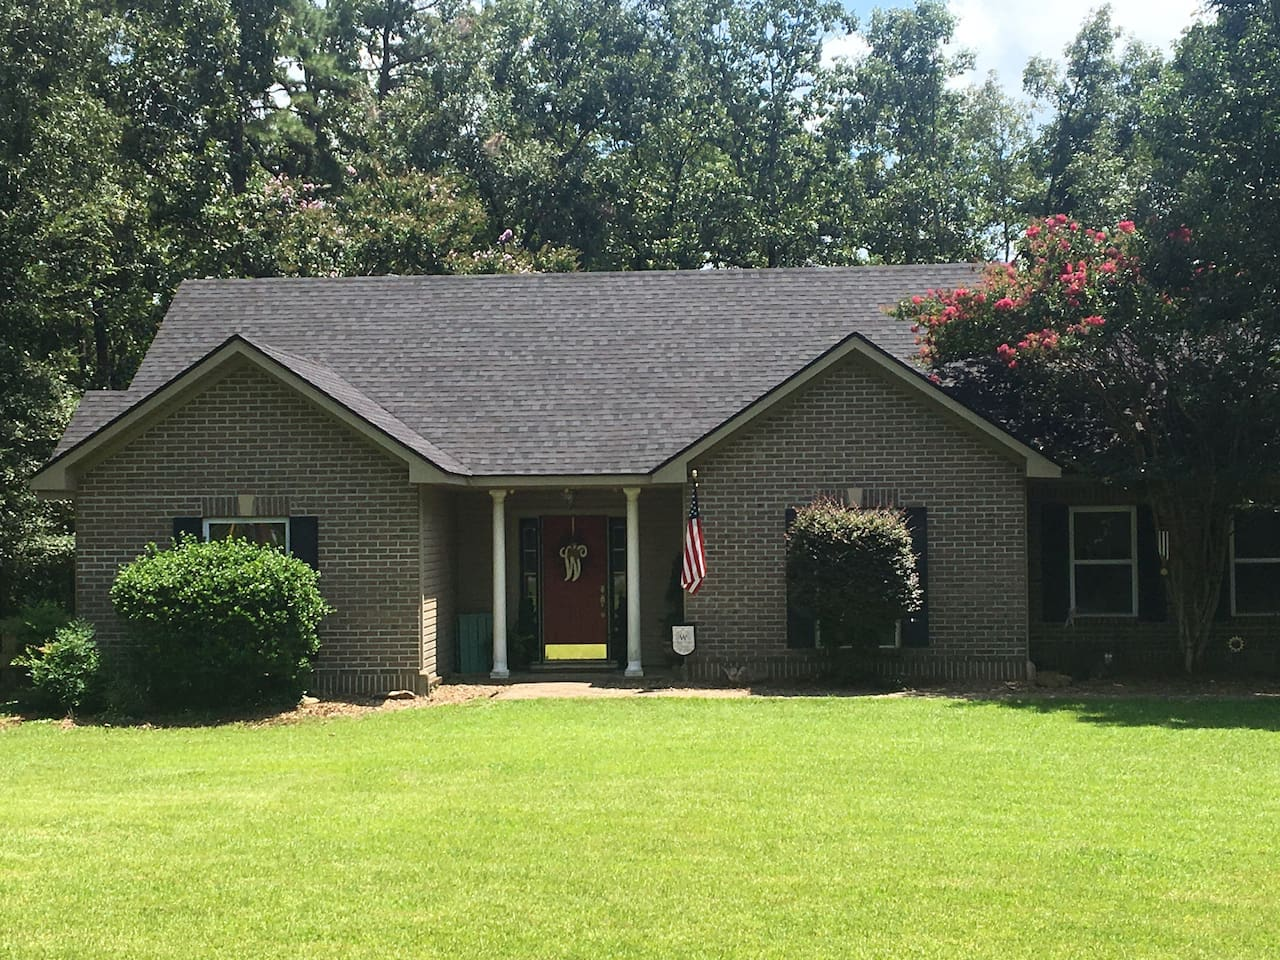 Four bedroom 2 bath home in gated resort community, perfect for a family reunion or adult get away!